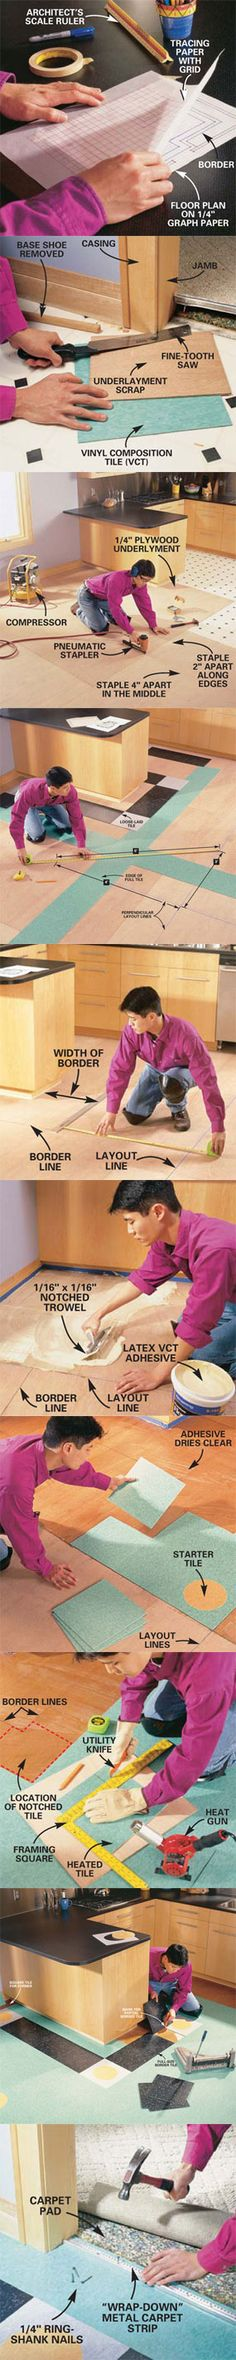 Learn how to lay vinyl tile like a pro at http://www.familyhandyman.com/DIY-Projects/Flooring/Vinyl-Flooring/how-to-lay-a-vinyl-tile-floor/View-All